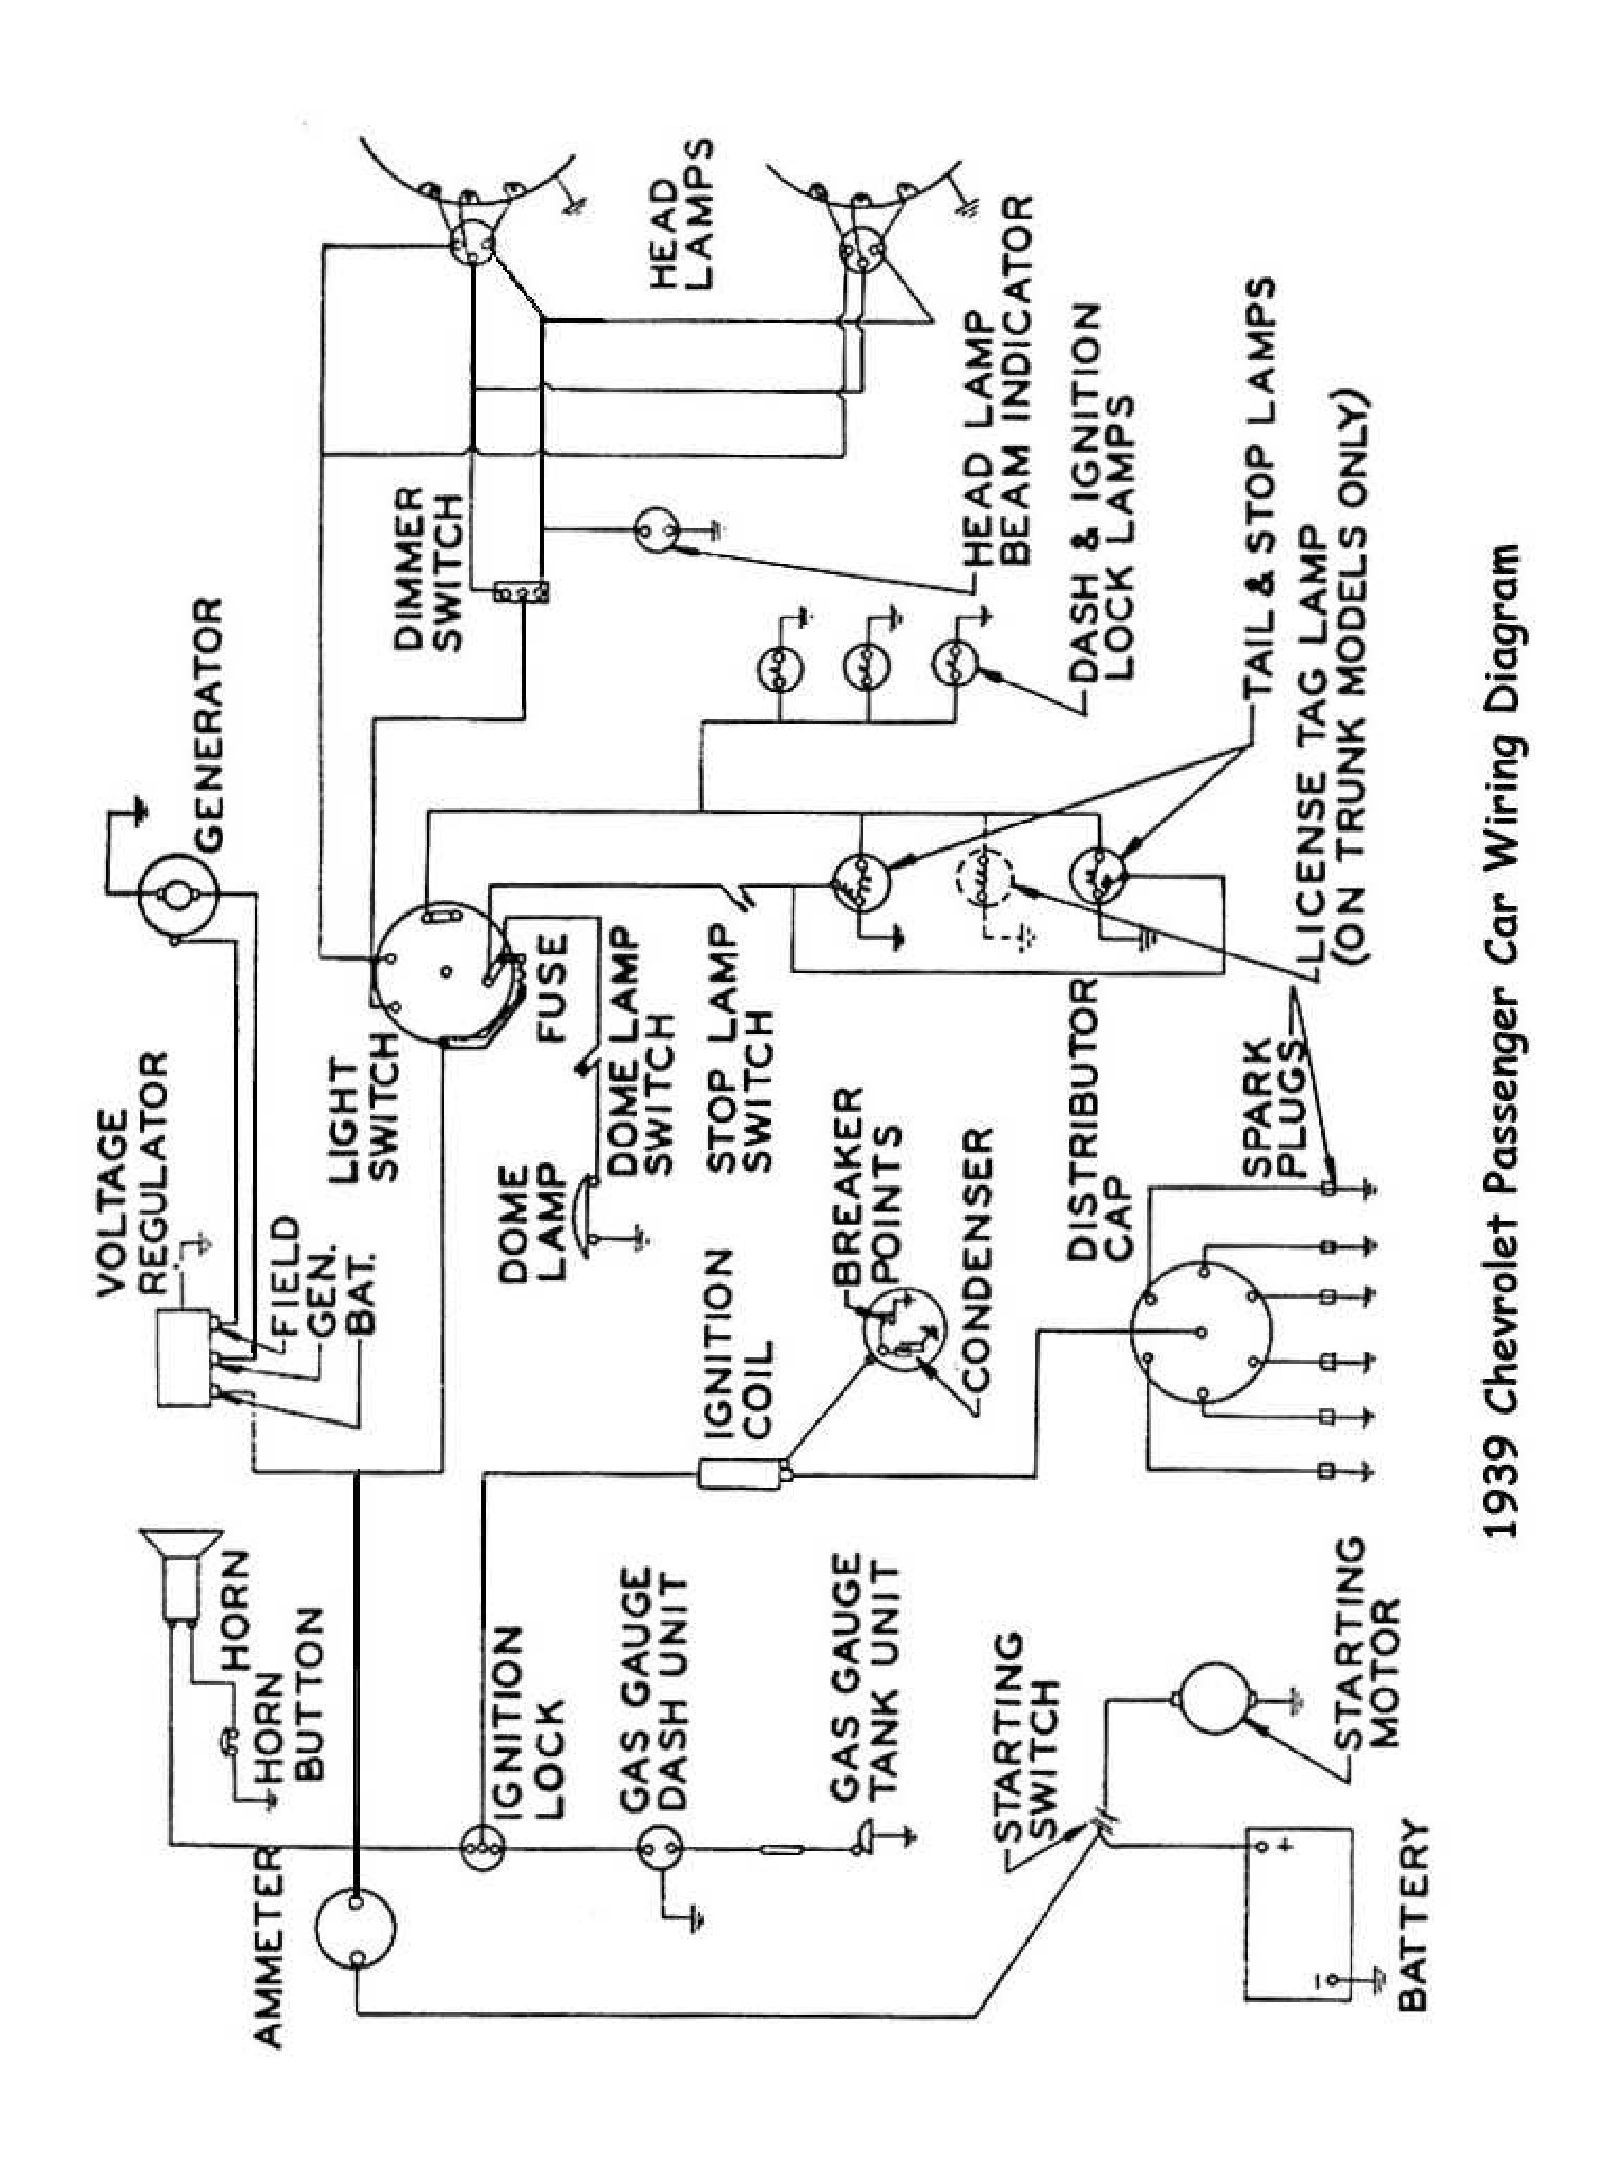 basic ignition wiring diagram awesome ignition wiring